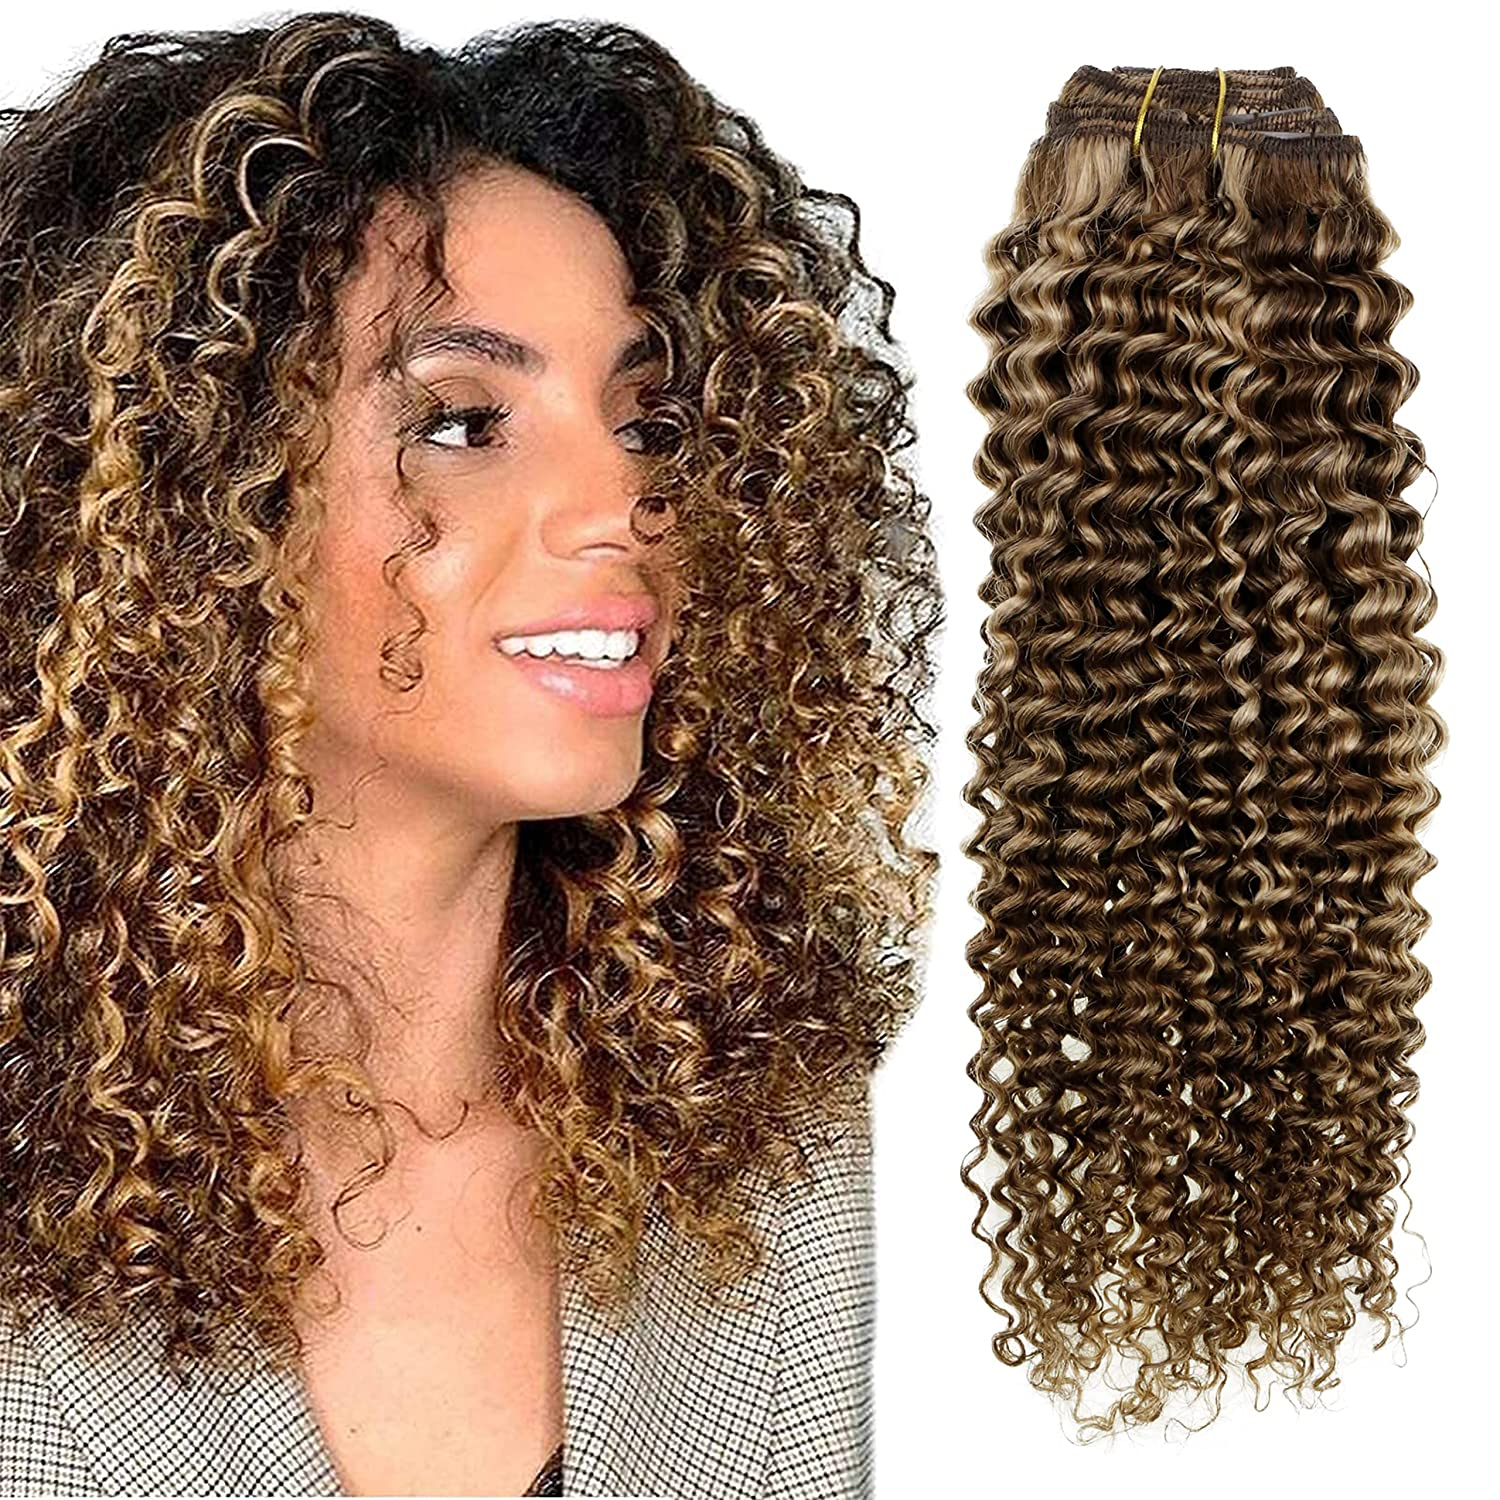 Hetto Curly Clip in Hair Extensions favorite Dallas Mall Brown Highl 27 #4 Human